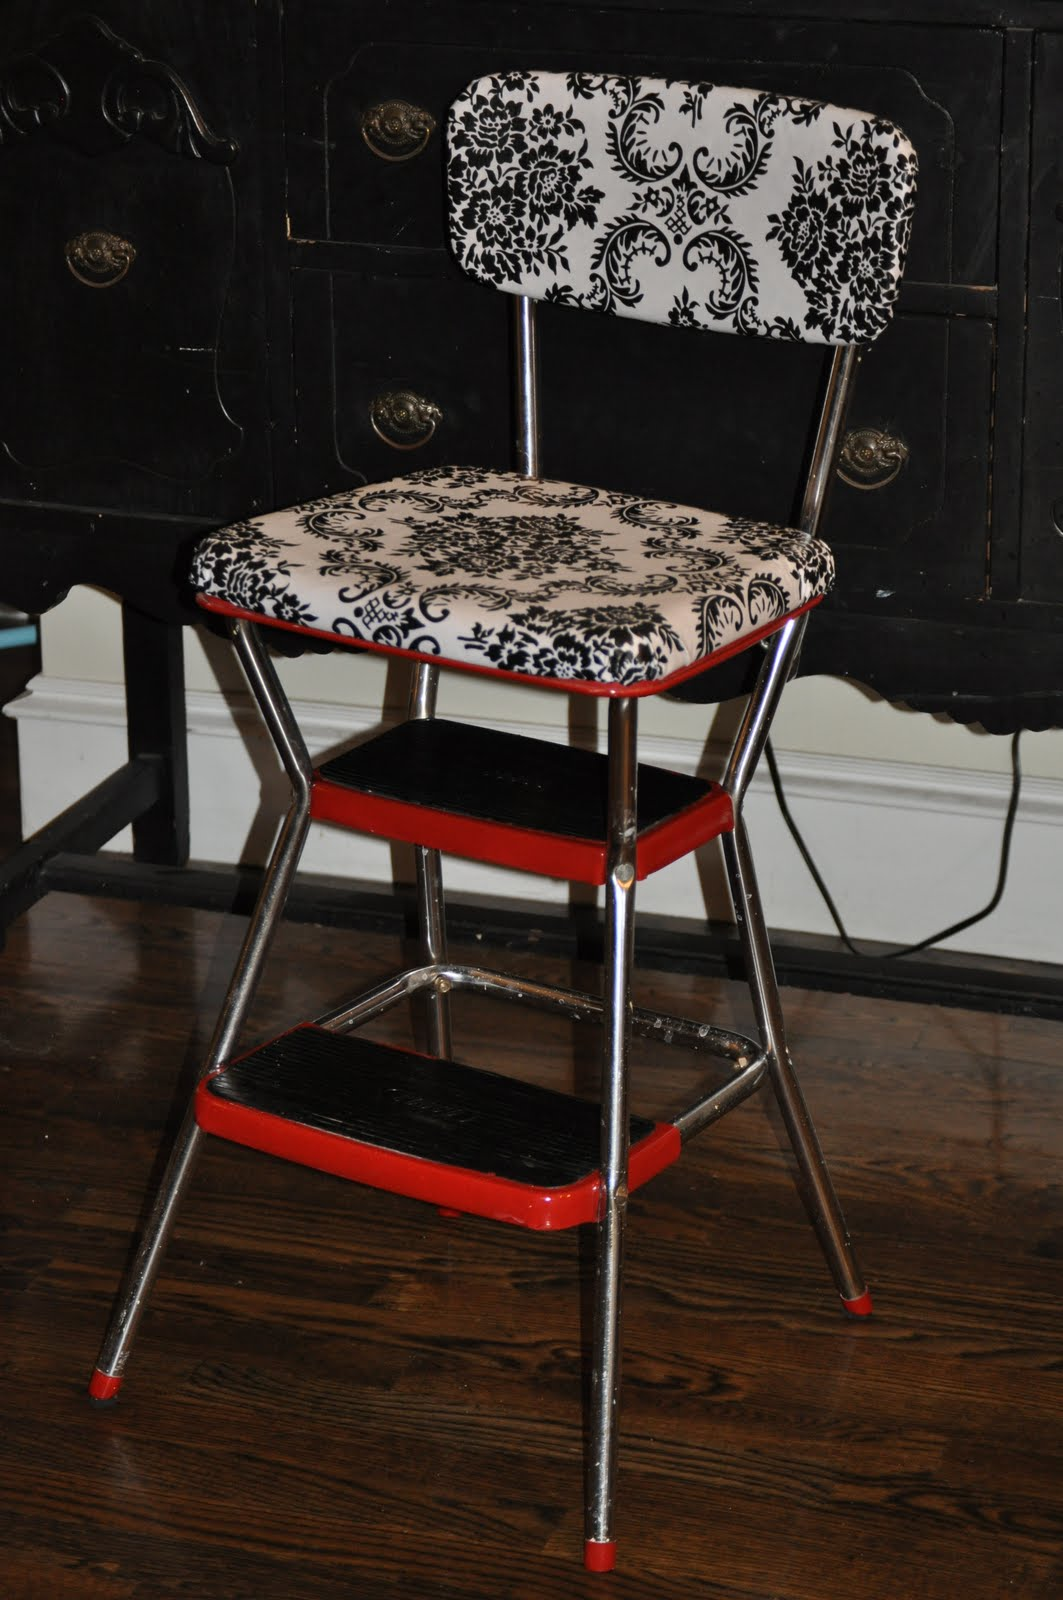 Kitchen Step Stool With Seat Timers Cassandra Design Classic Red Chair